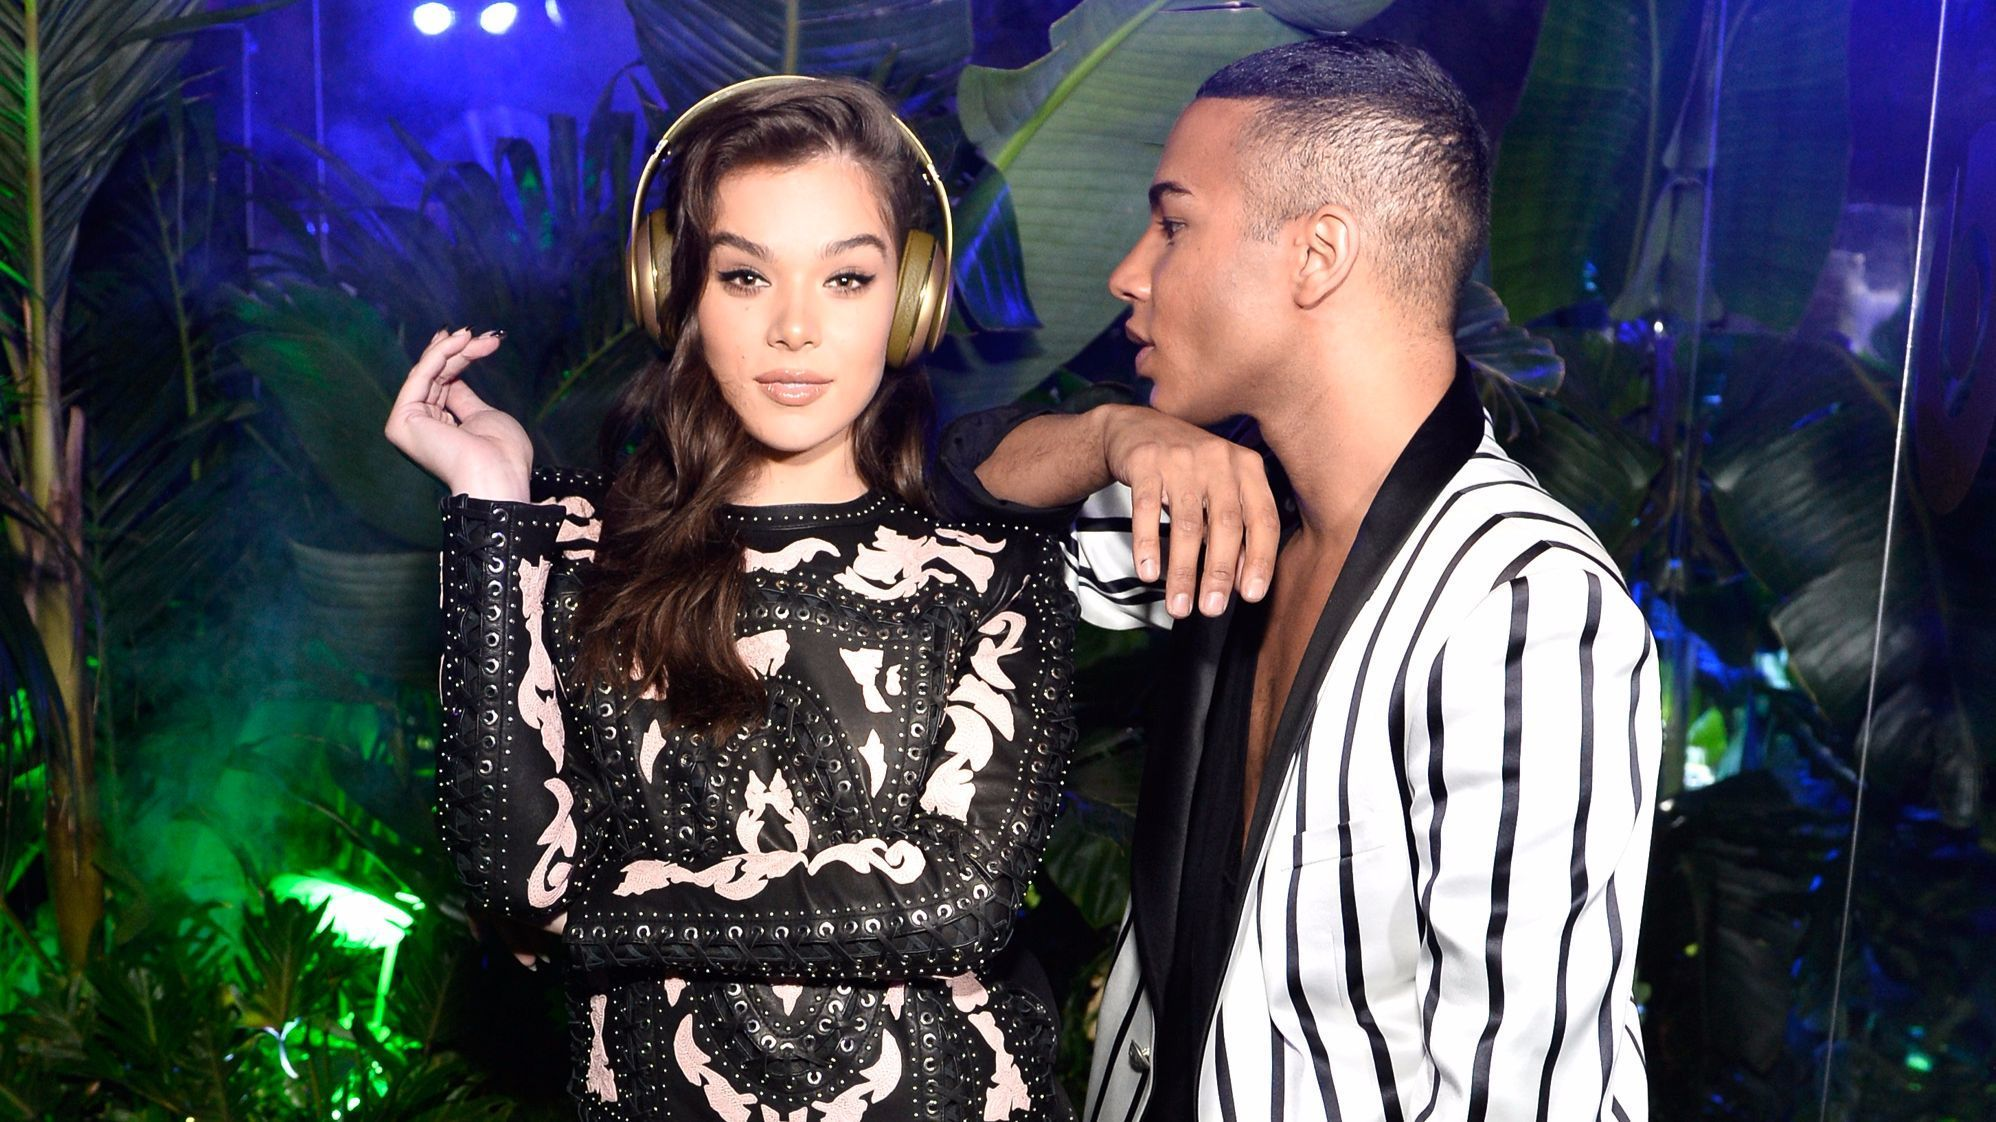 Actress Hailee Steinfeld and Balmain creative director Olivier Rousteing at the Balmain and Beats by Dre collaboration party in Beverly Hills.